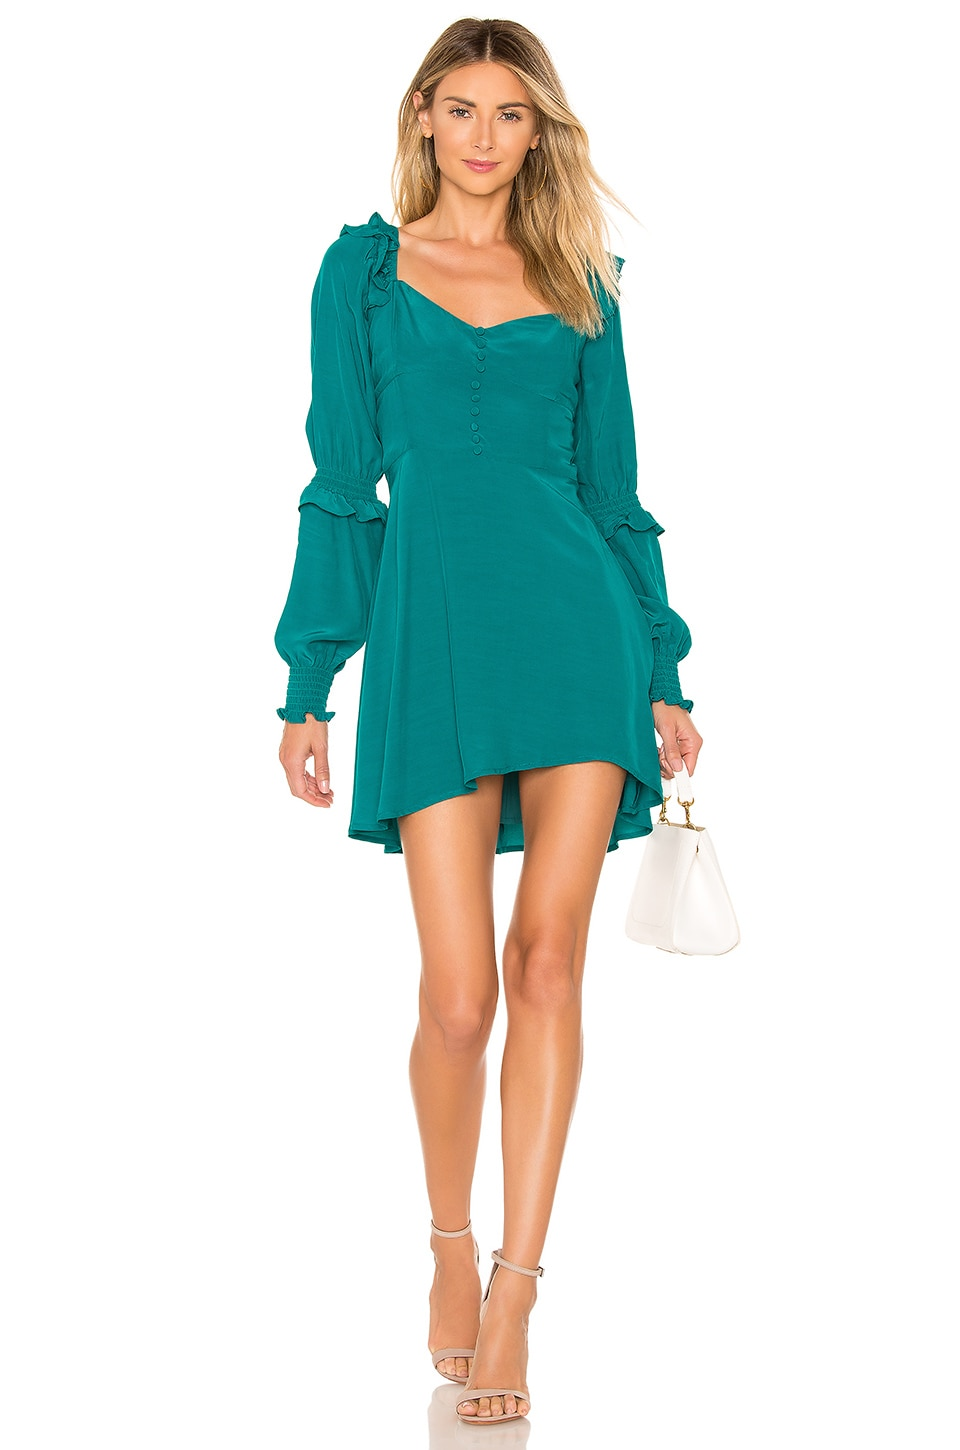 For Love & Lemons X REVOLVE Sweetheart Dress in Emerald